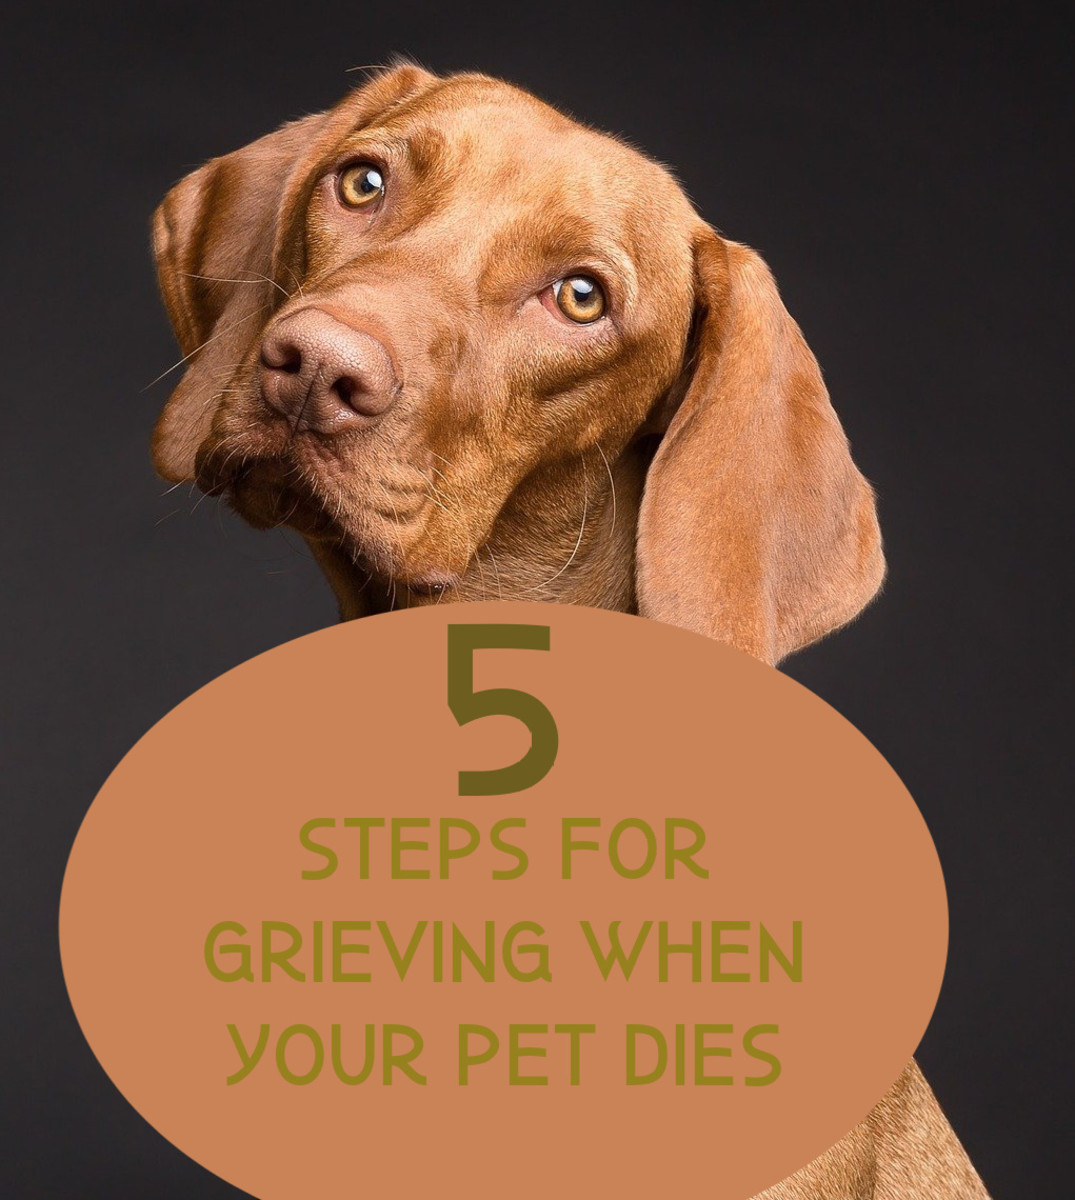 Talk about your loss with fellow animal lovers and don't expect those who aren't to understand your sorrow.